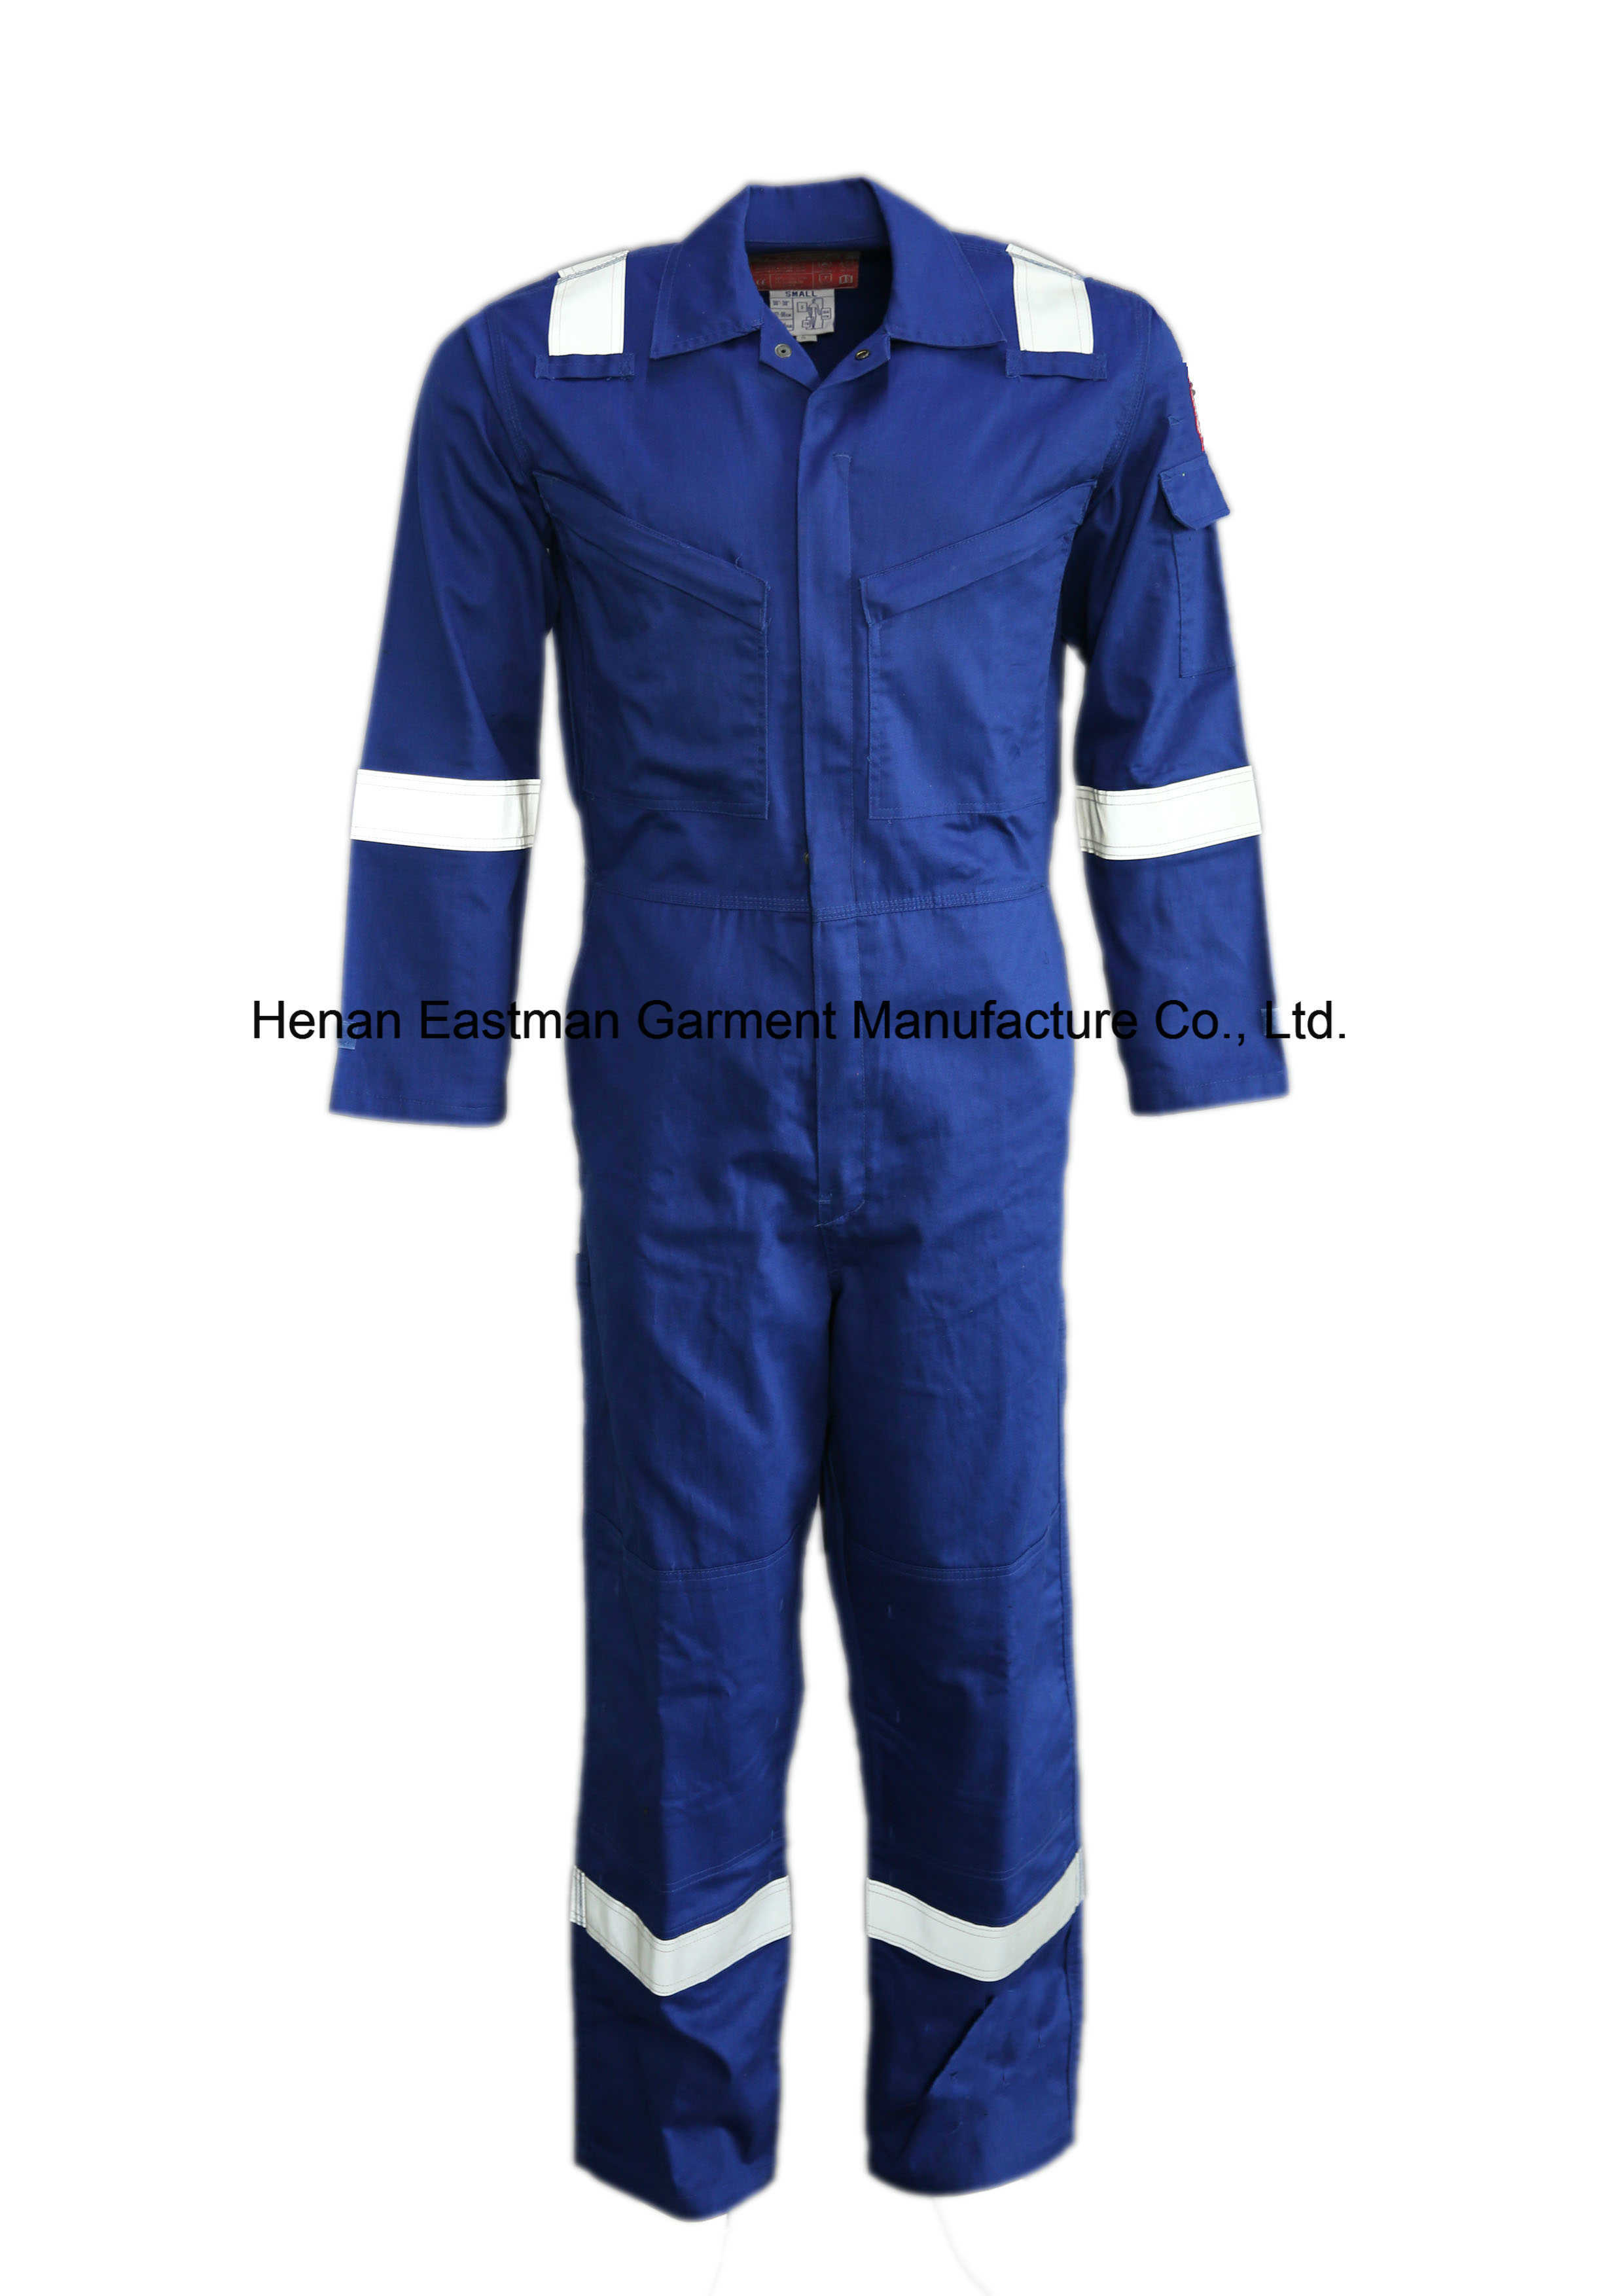 Nfpa2112/Can Cgsb 155.20 Standard Flame Resistant Coverall